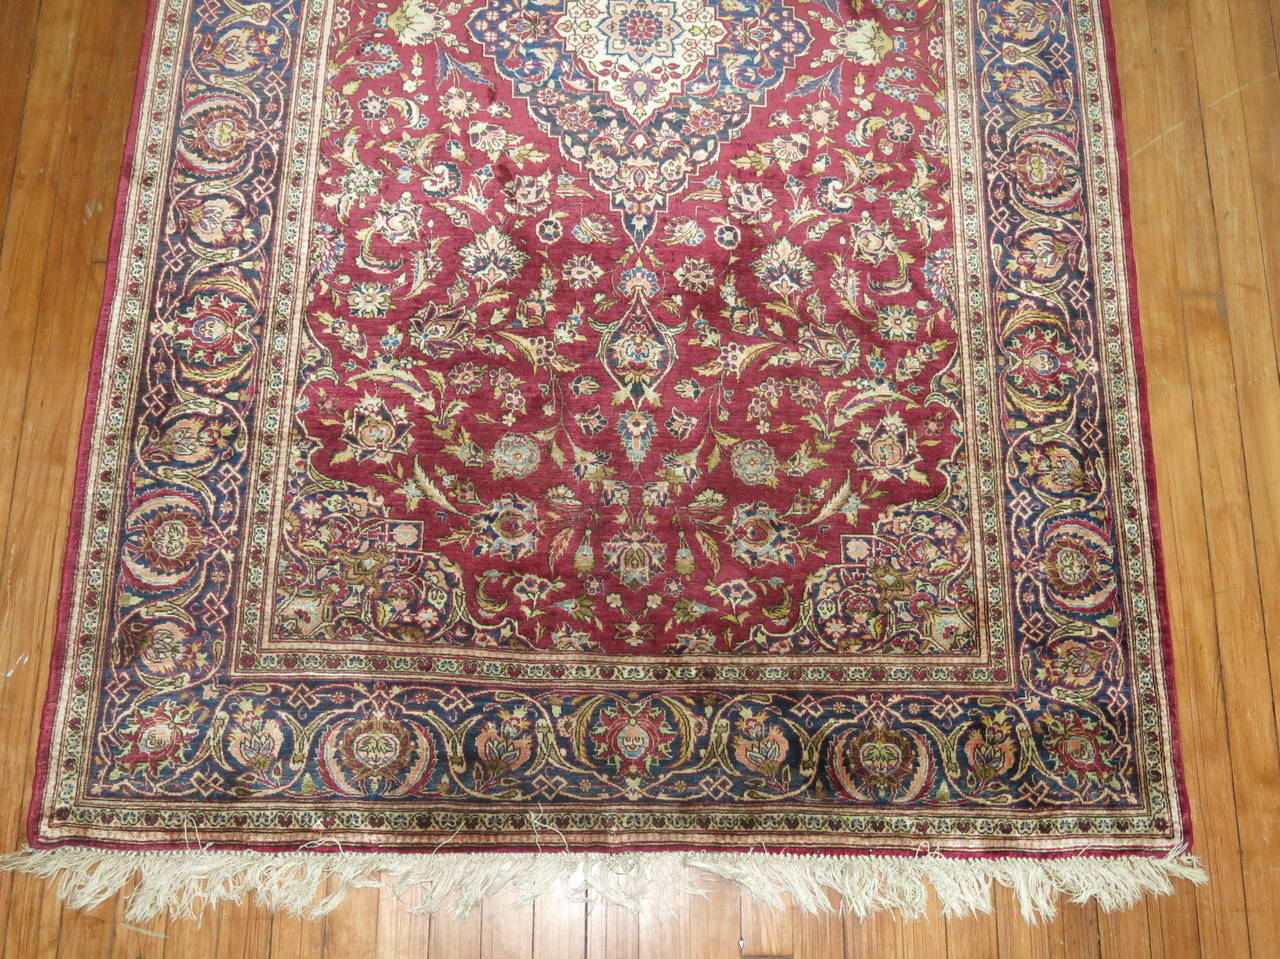 Antique Persian Silk Area Rug In Excellent Condition For Sale In New York, NY